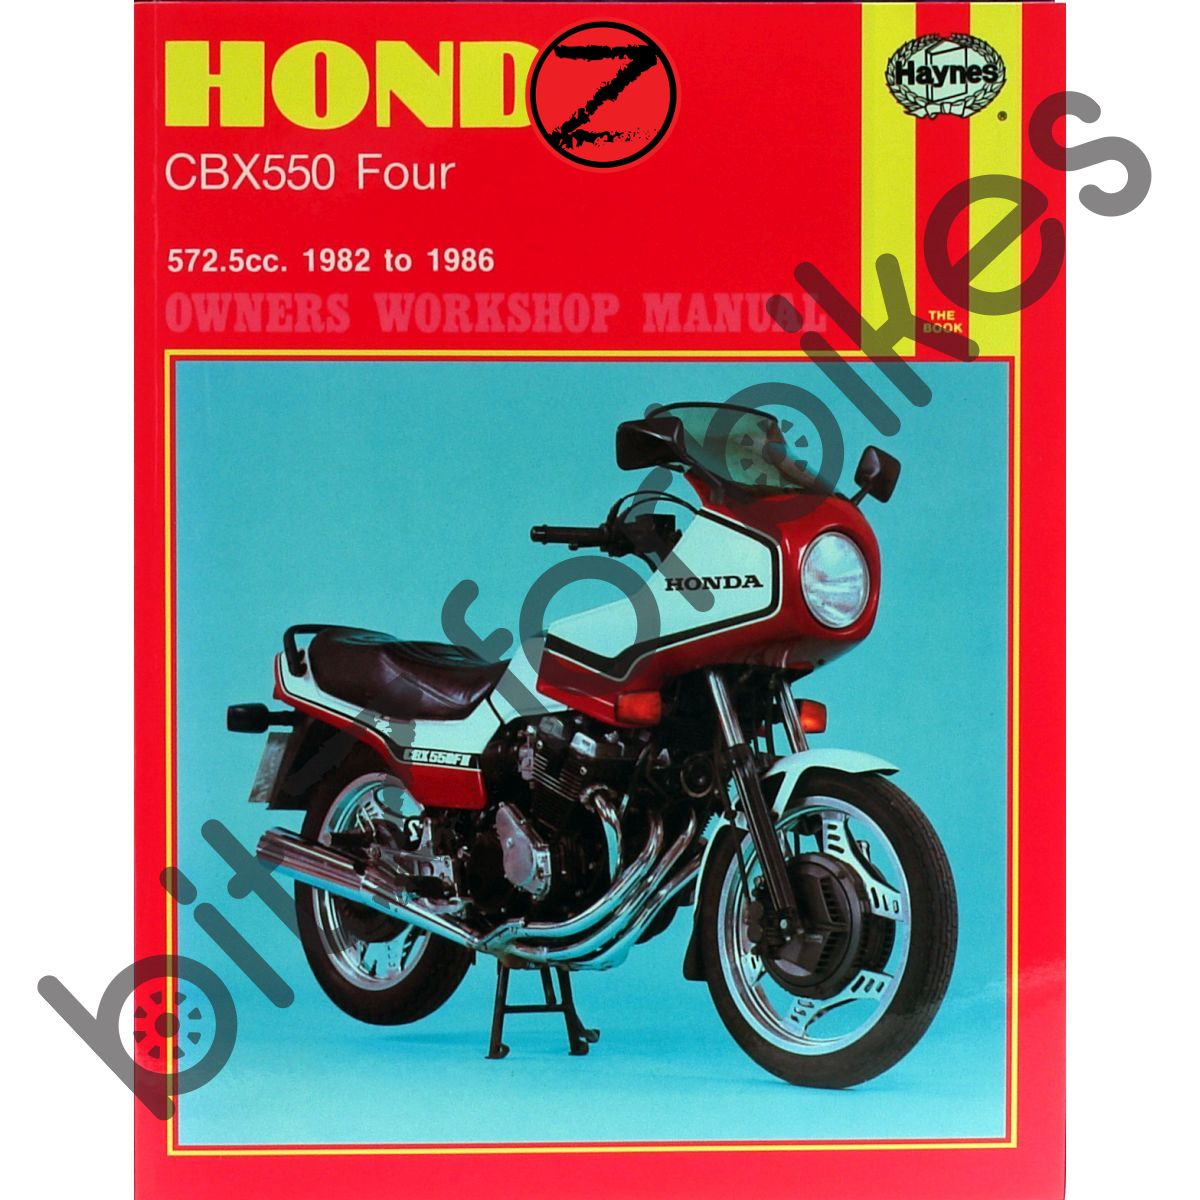 Motorcycle Manual Ma The Best Motorcycle 2018